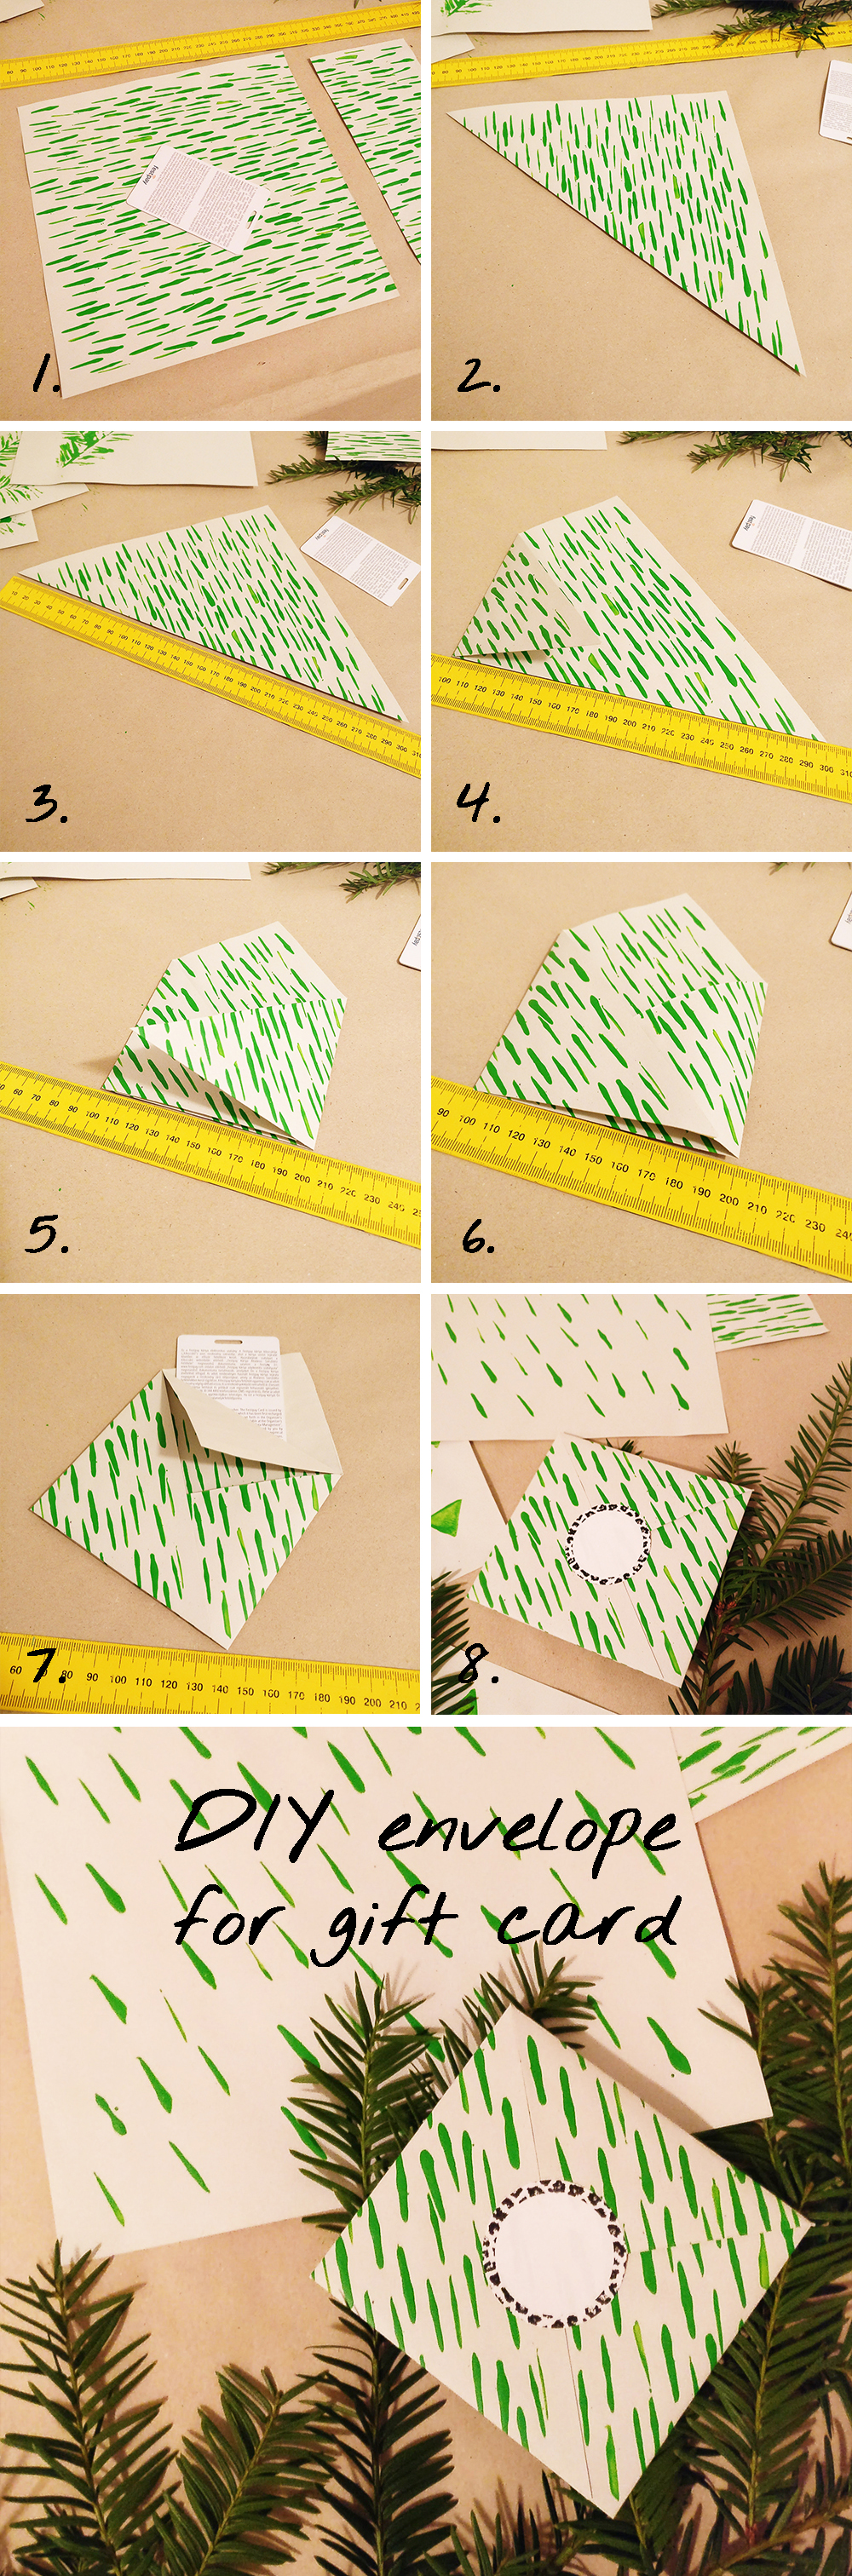 DIY Origami envelope for gift card | Aliz's Wonderland